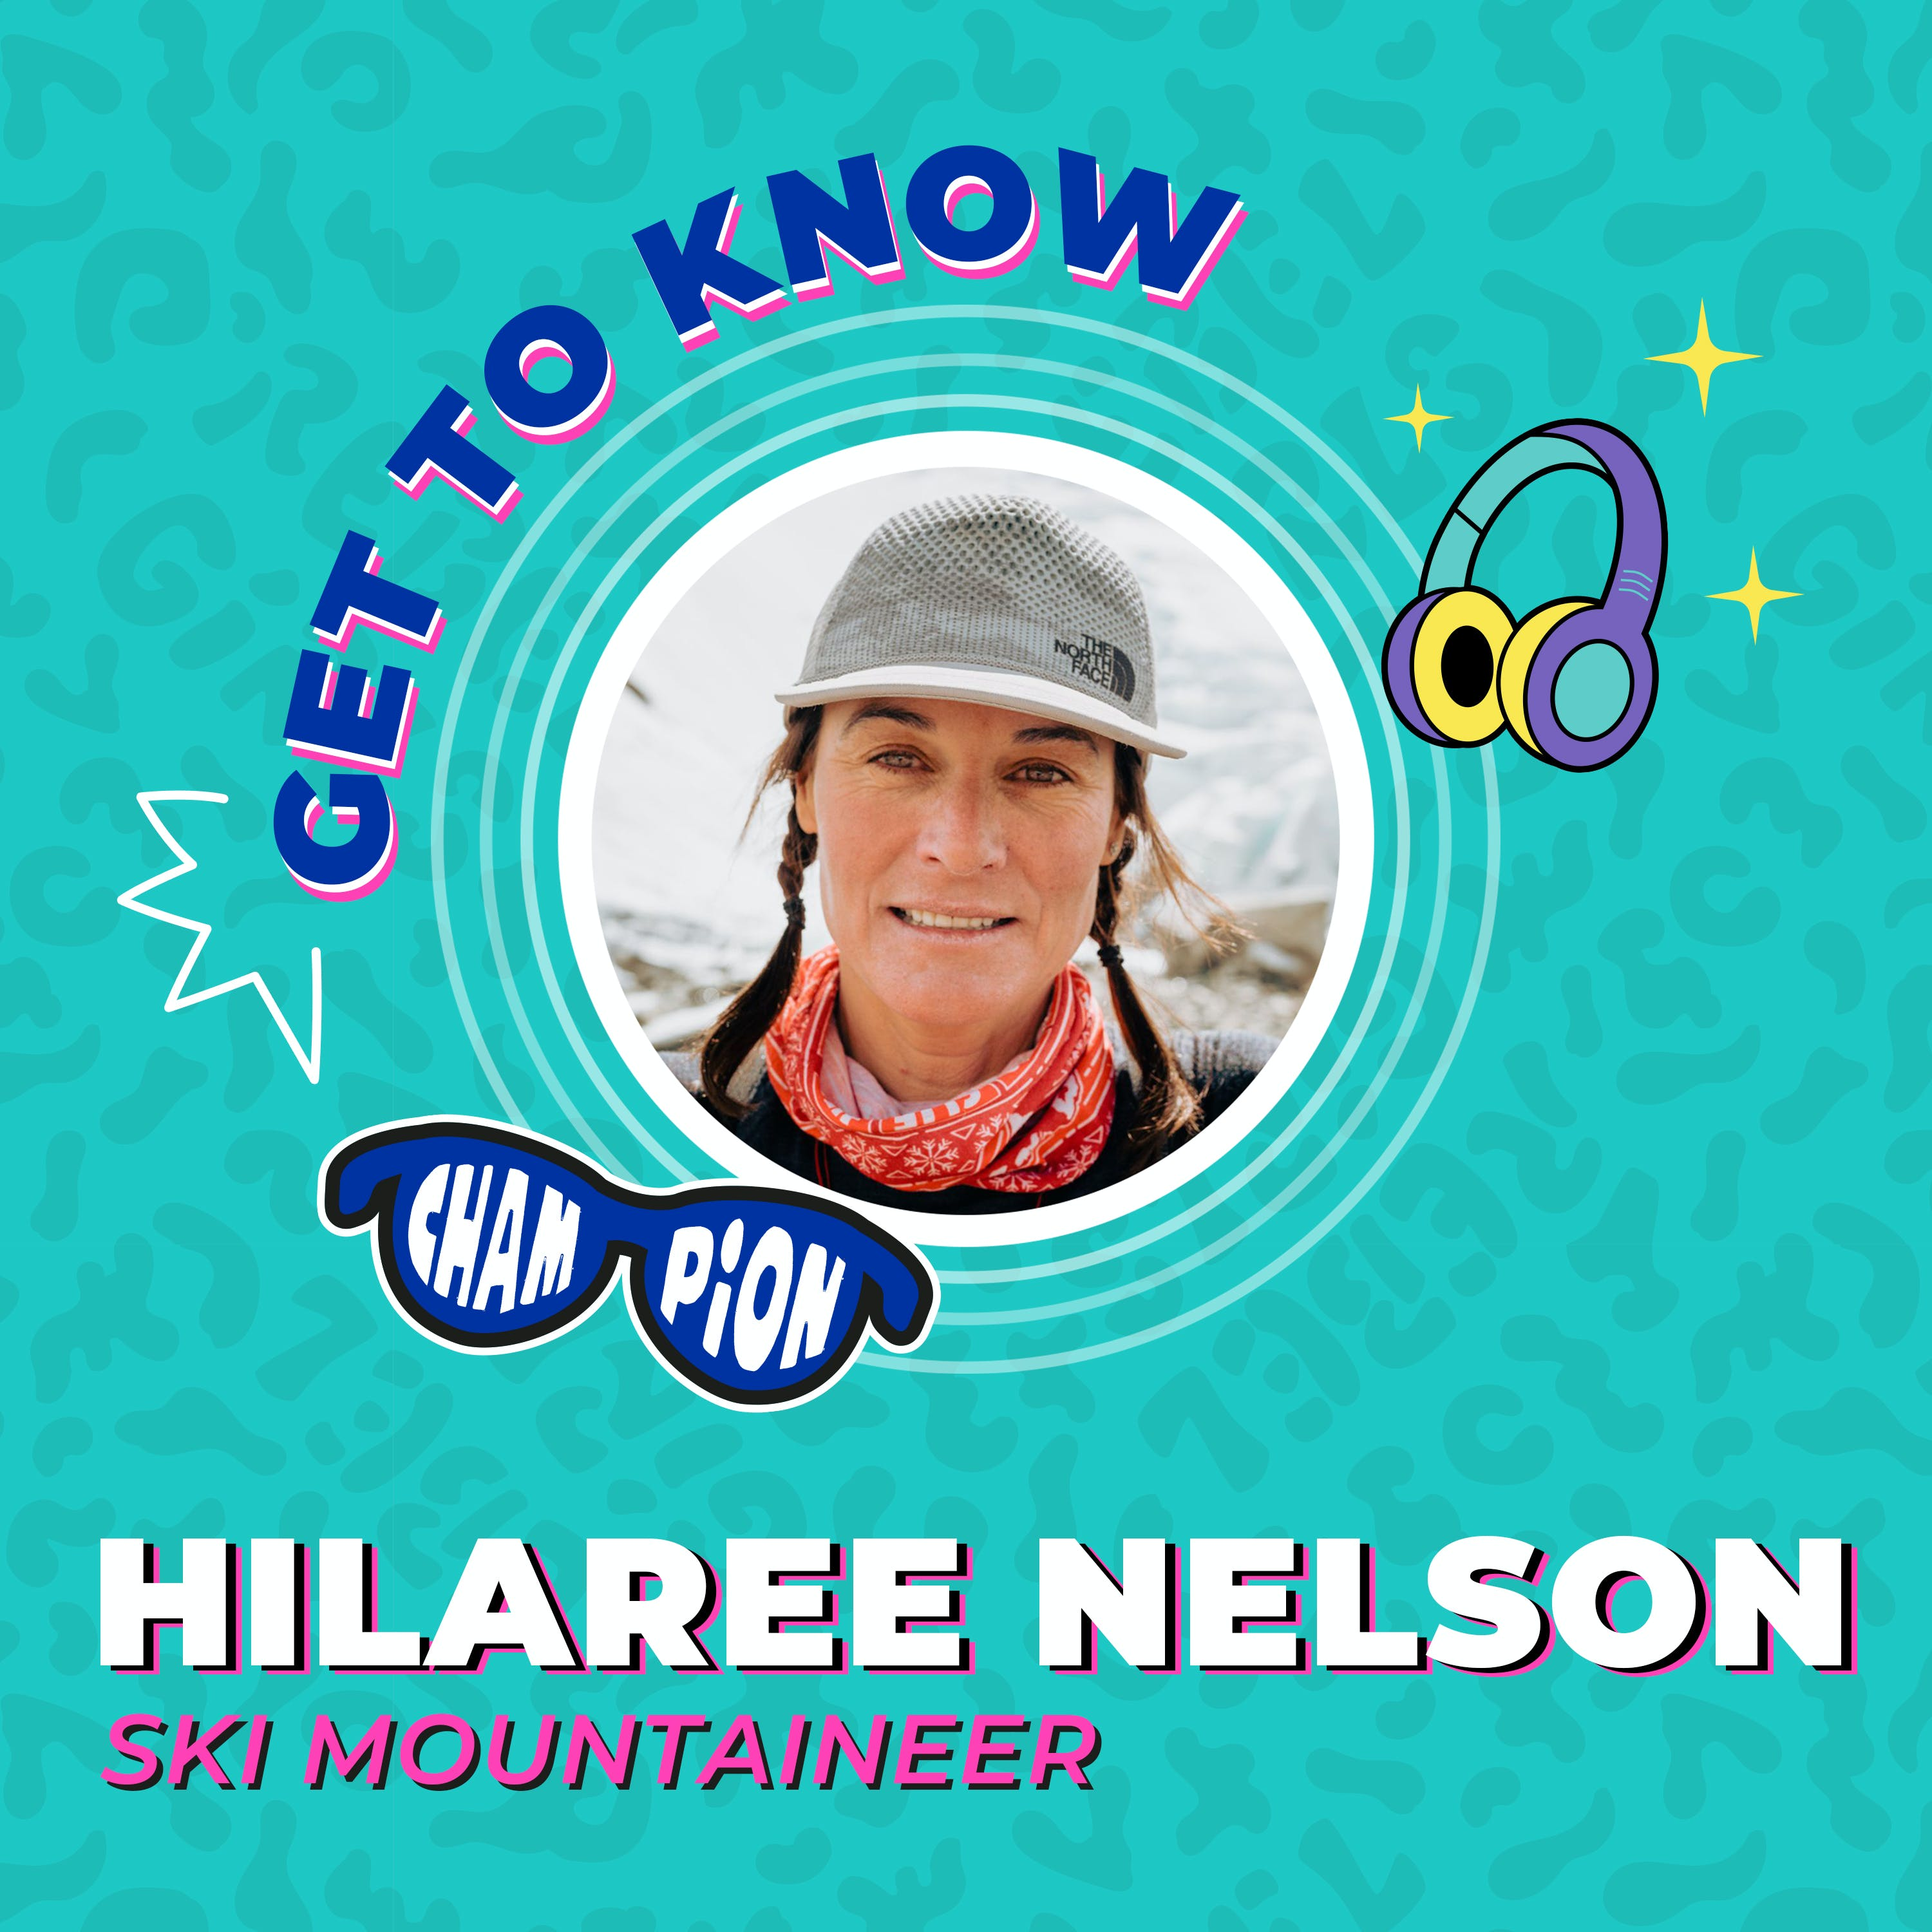 Get to Know Hilaree Nelson